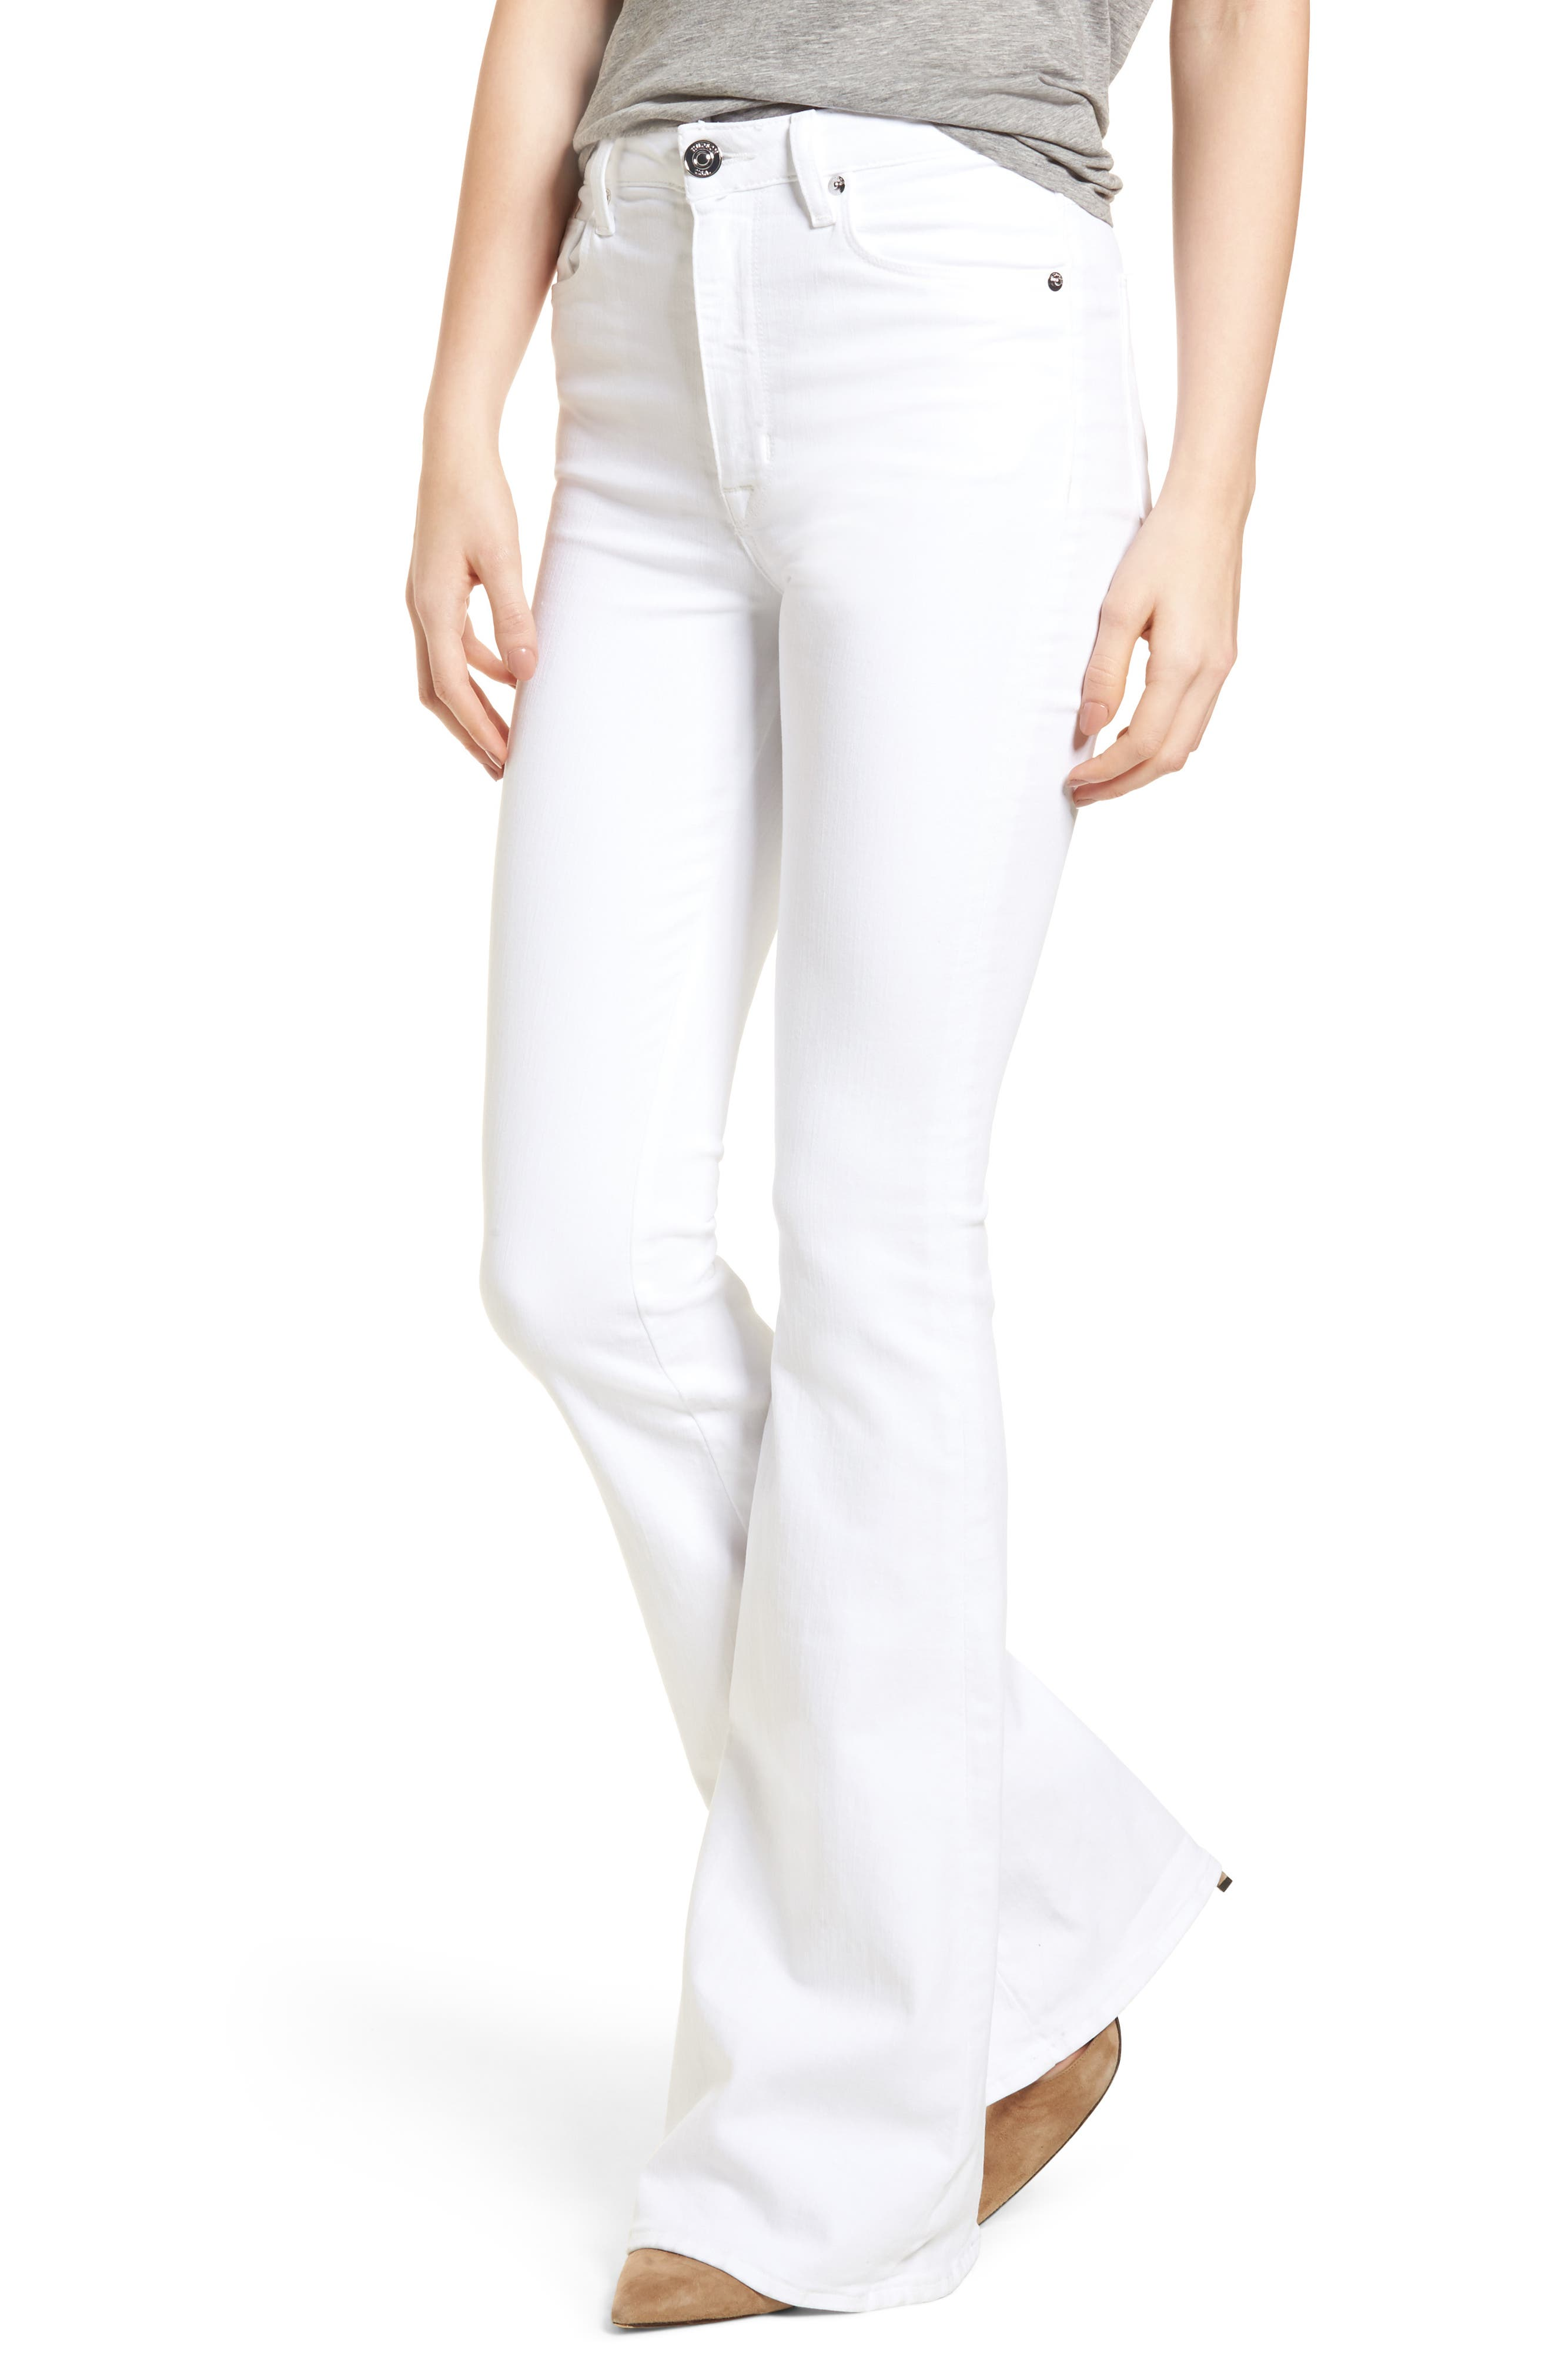 Holly High Waist Flare Jeans,                             Main thumbnail 1, color,                             Optical White